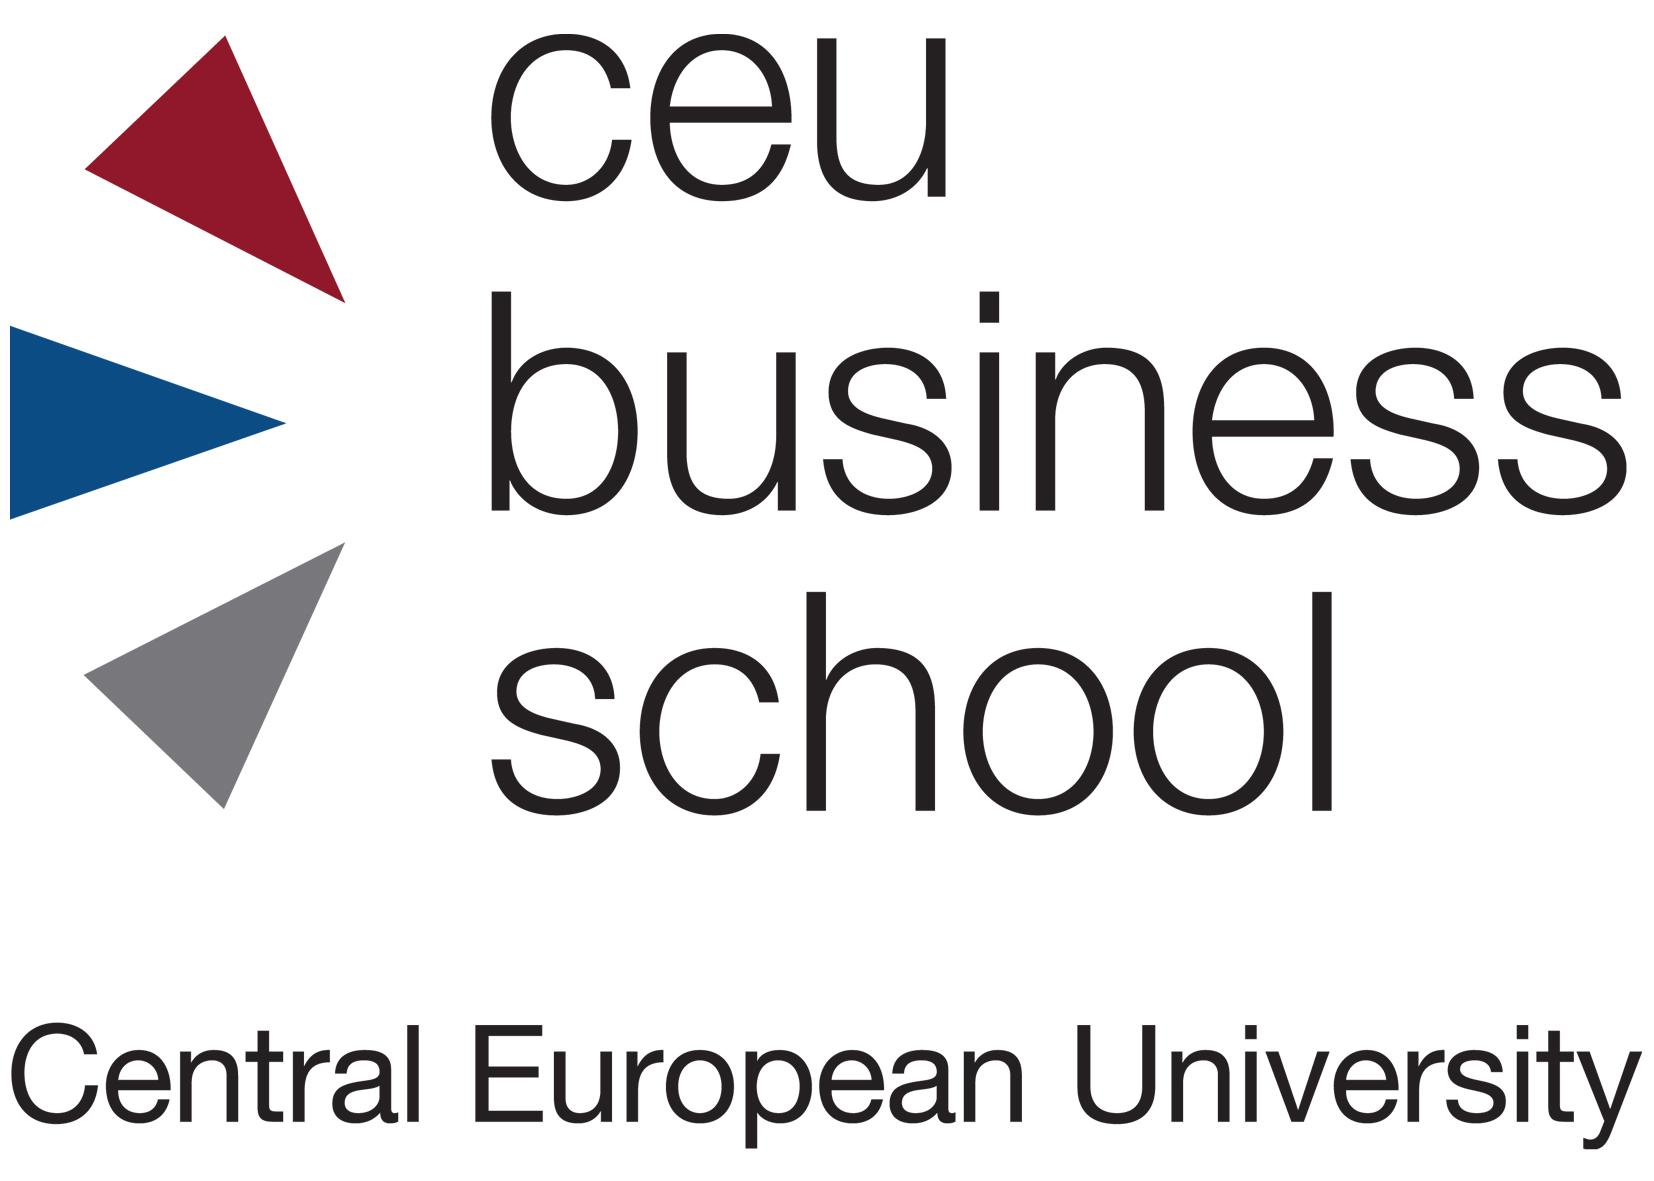 CEU Business School Event: The Business Impact Of Energy Innovation & Sustainability